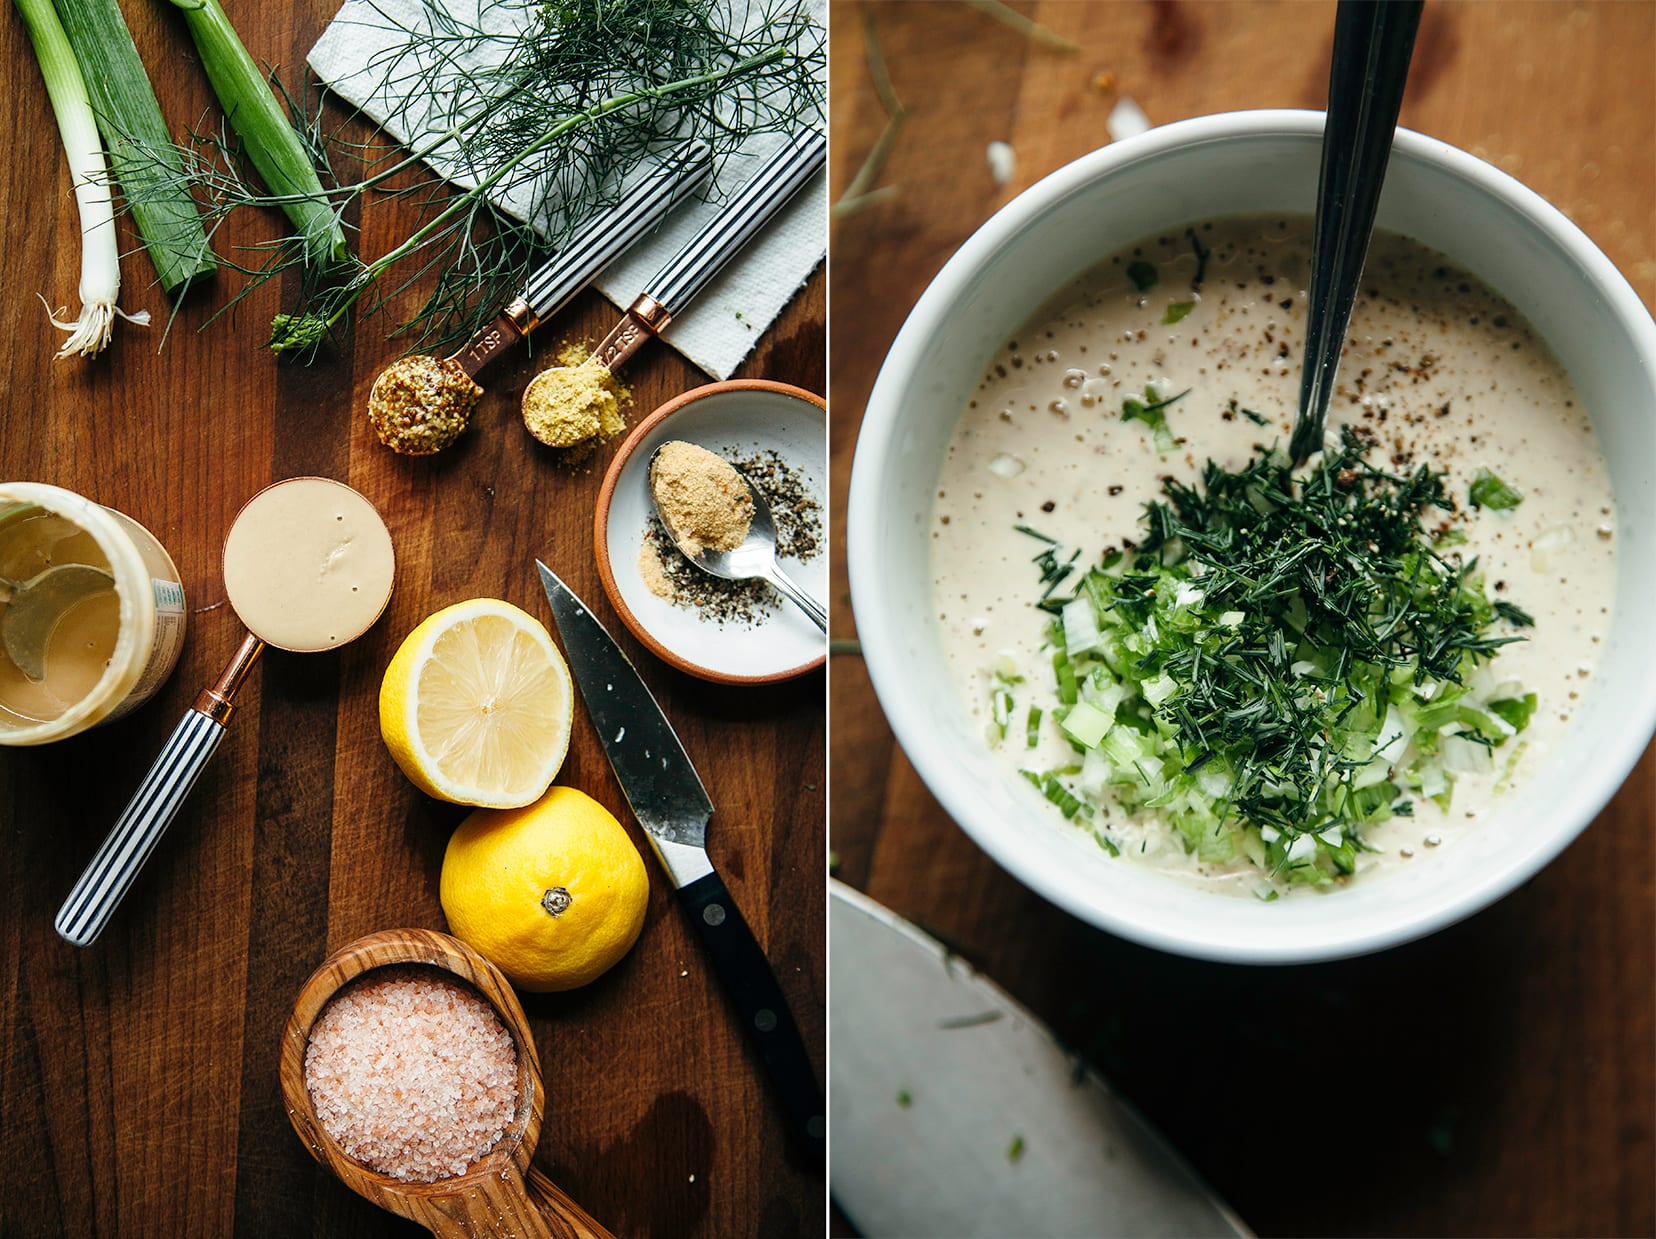 Two images show the ingredients for a tahini ranch dressing and the mixed up bowl of the actual dressing.